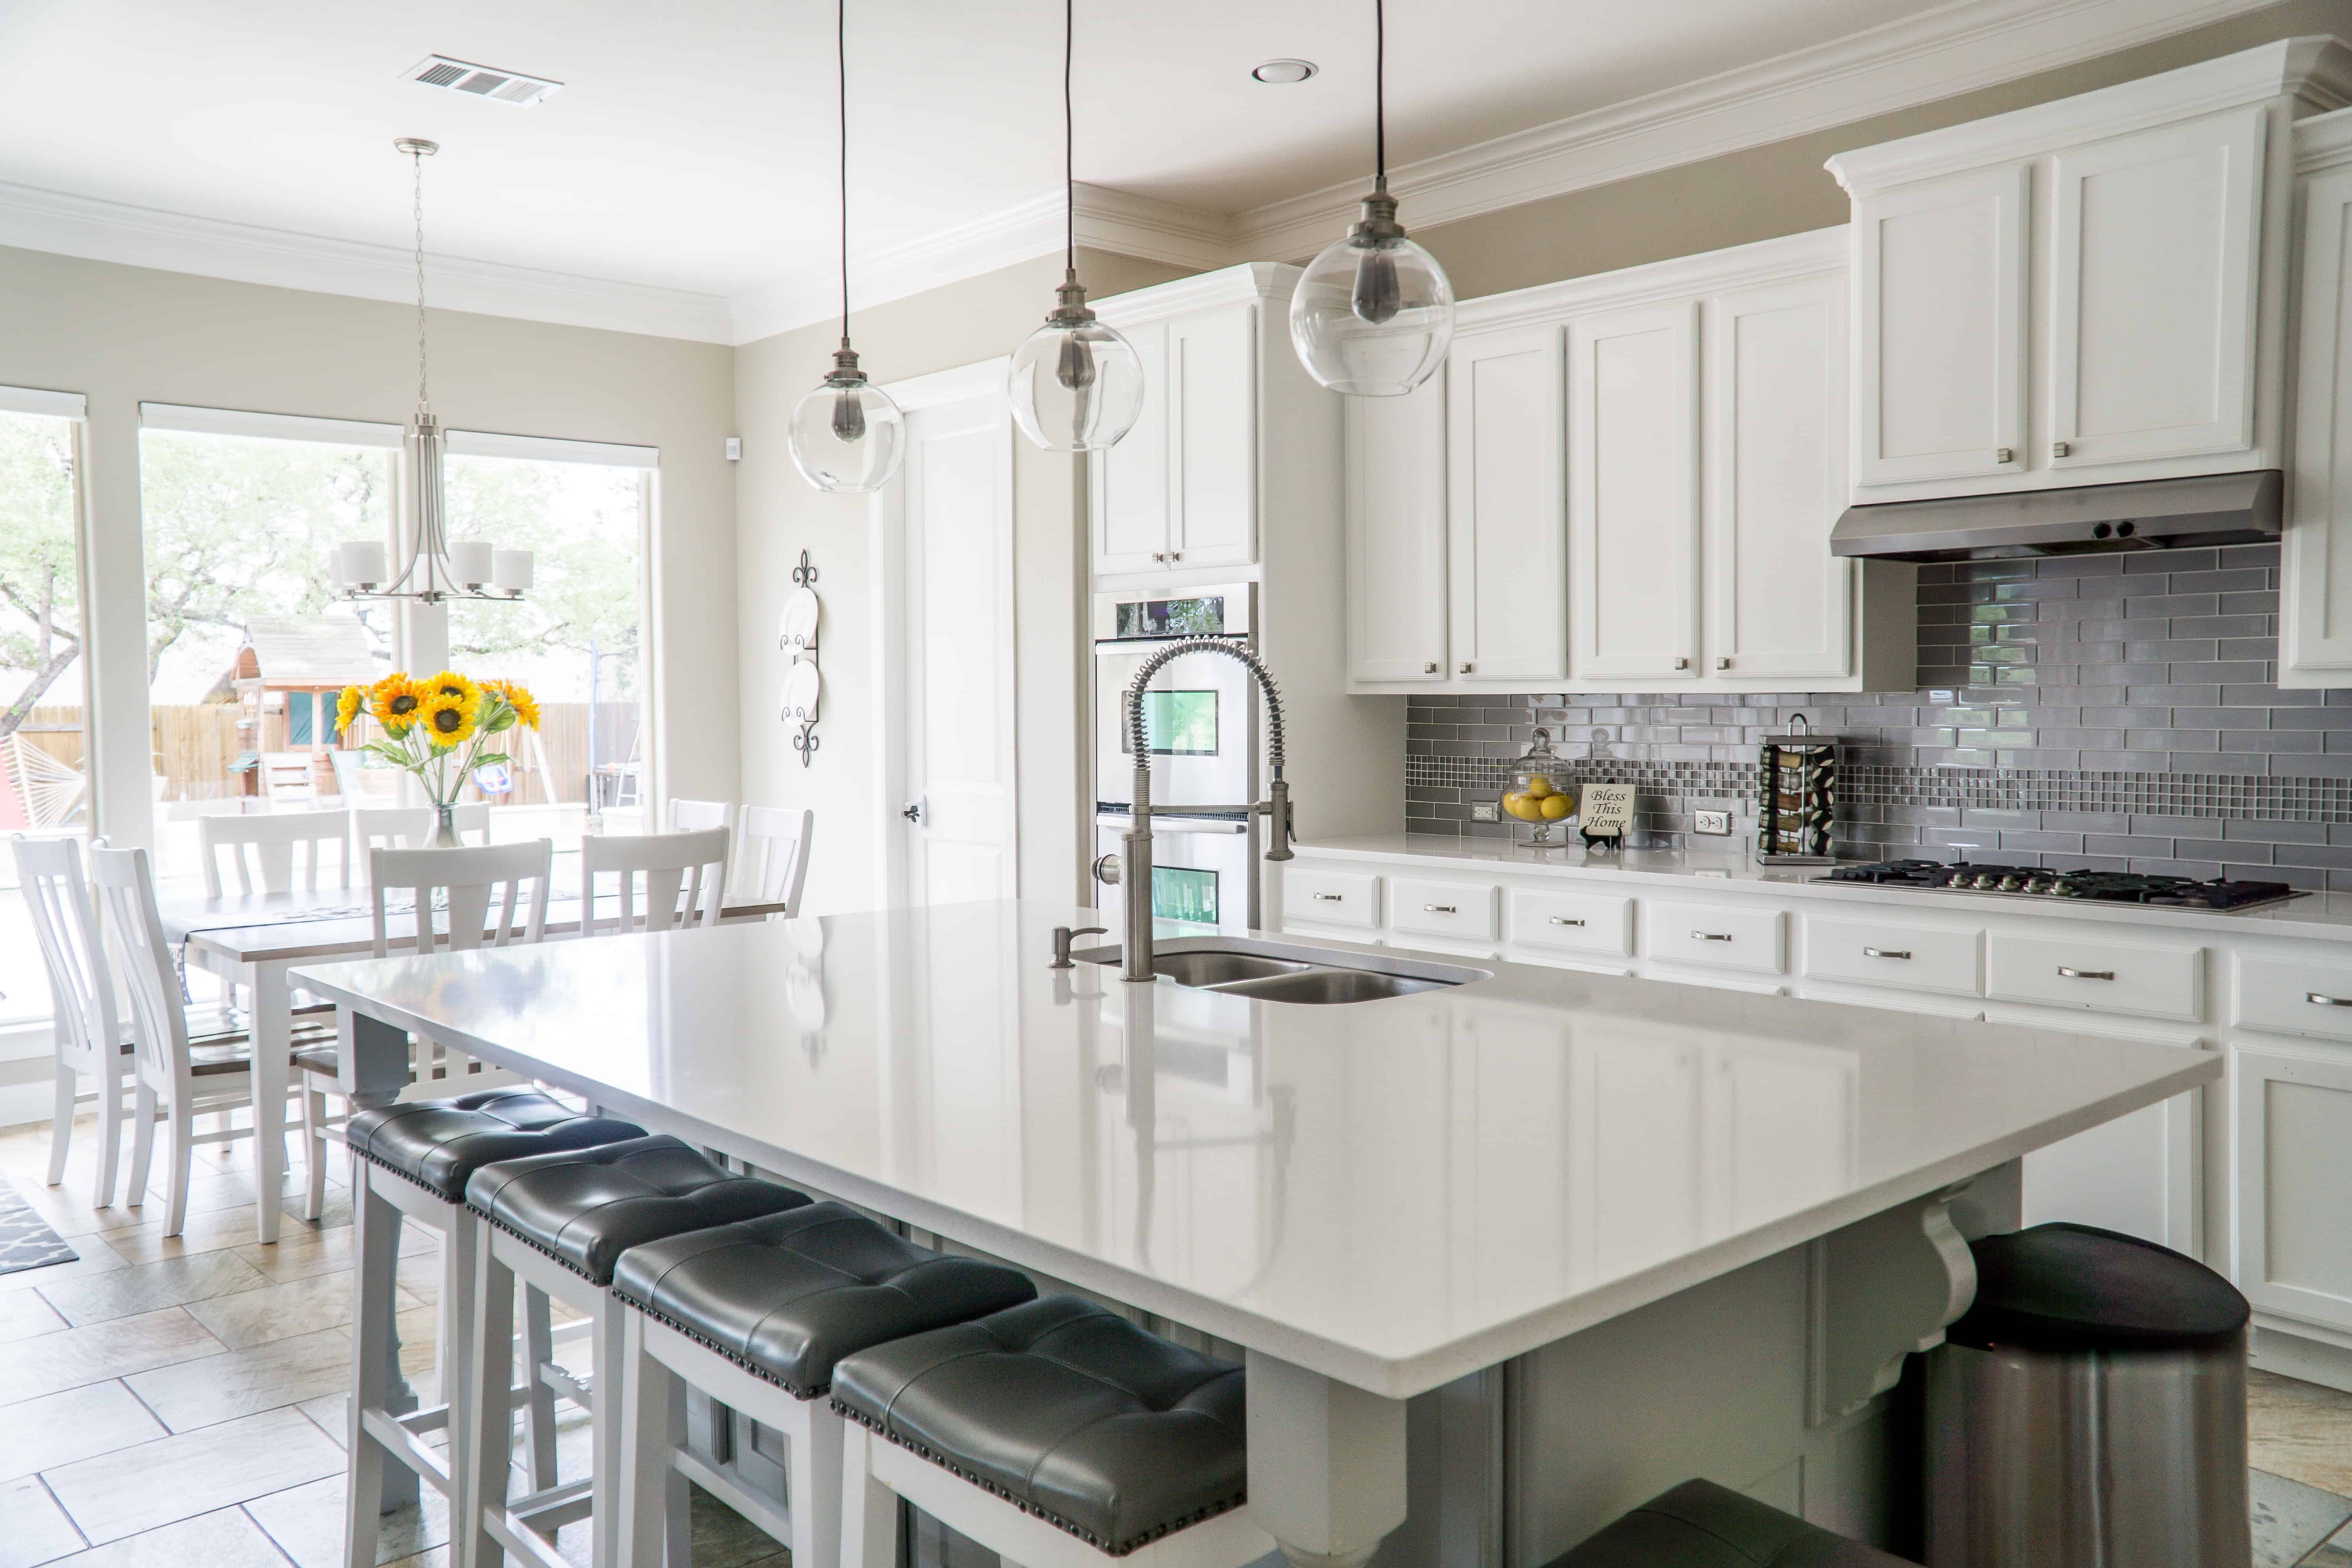 Should You Refinish Or Replace Your Kitchen Cabinets?